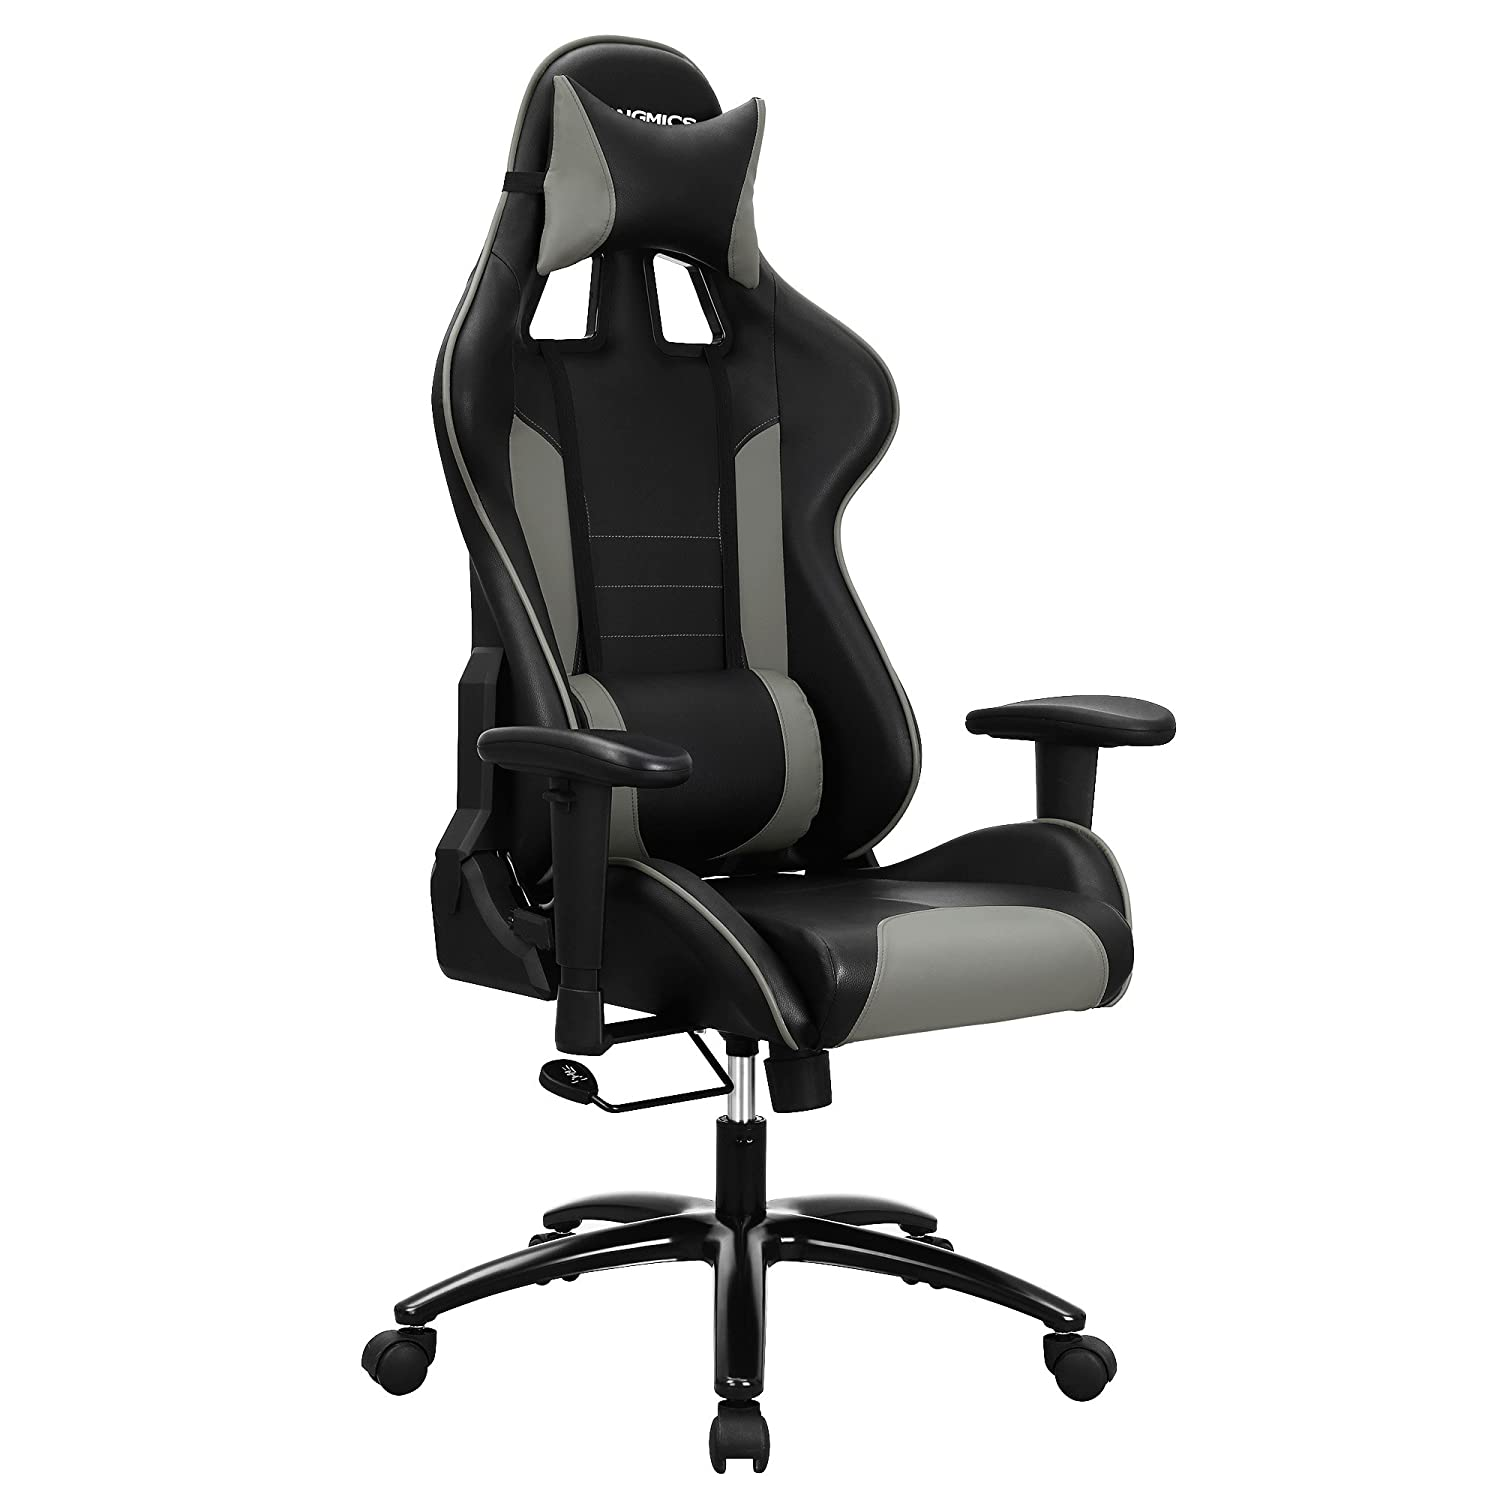 SONGMICS Gaming Swivel Office Chair with High Back, Molding Foam Padded Cushion, Adjustable Headrest and Lumbar Support/for Home or Office Desk Black and Grey URCG17GY-